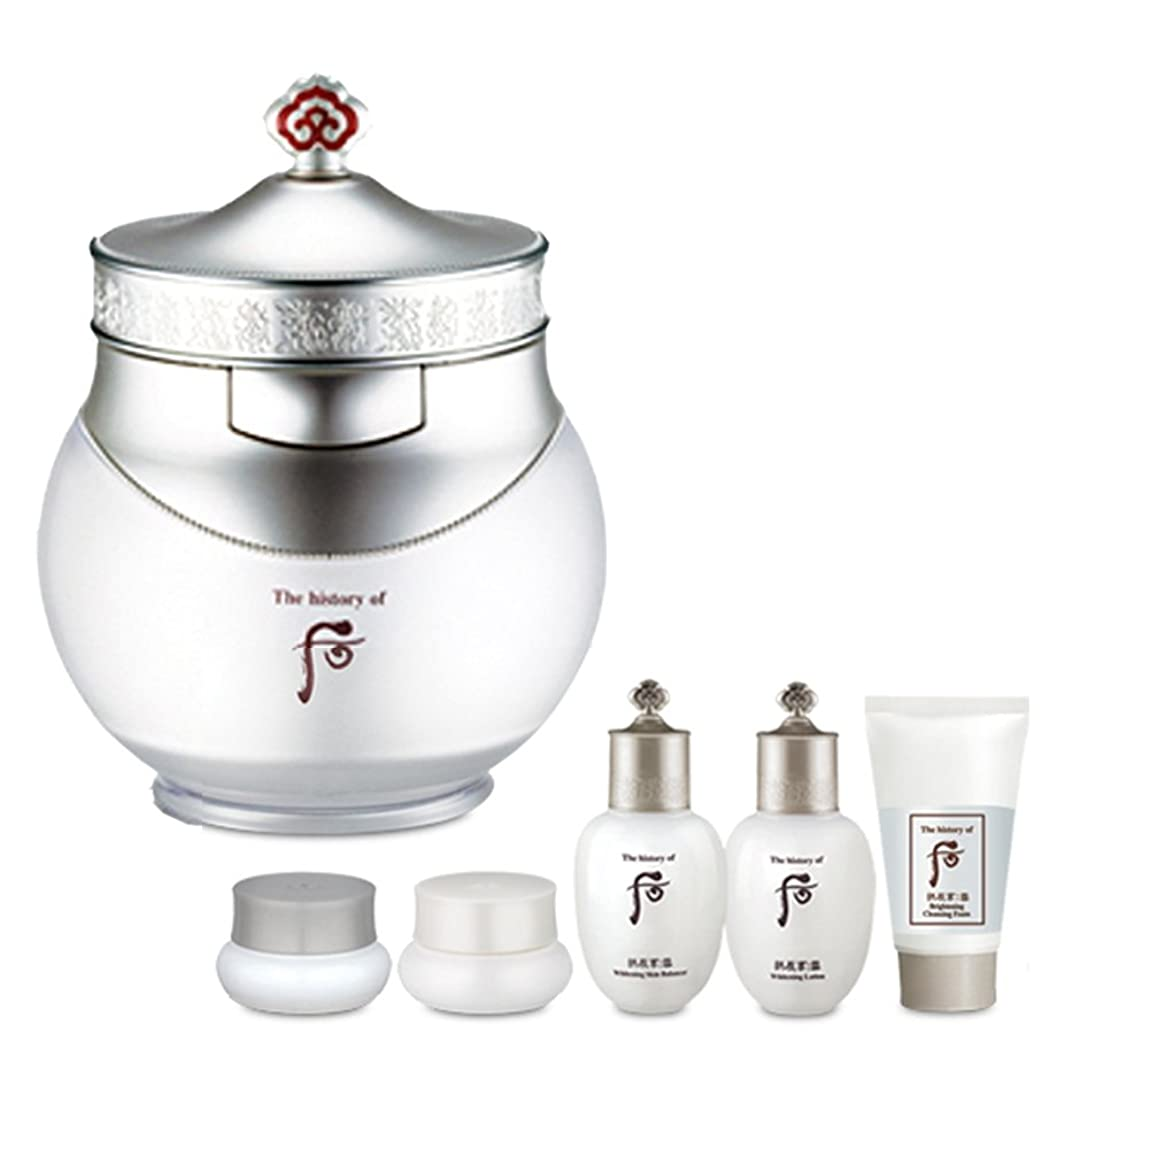 マージ鍔タヒチ后 拱辰享:雪 美白水分膏 60ml The History of Whoo Gongjinhyang seol Whitening & Moisture Cream 60ml+特別謝恩品 Special gift [海外直送品]